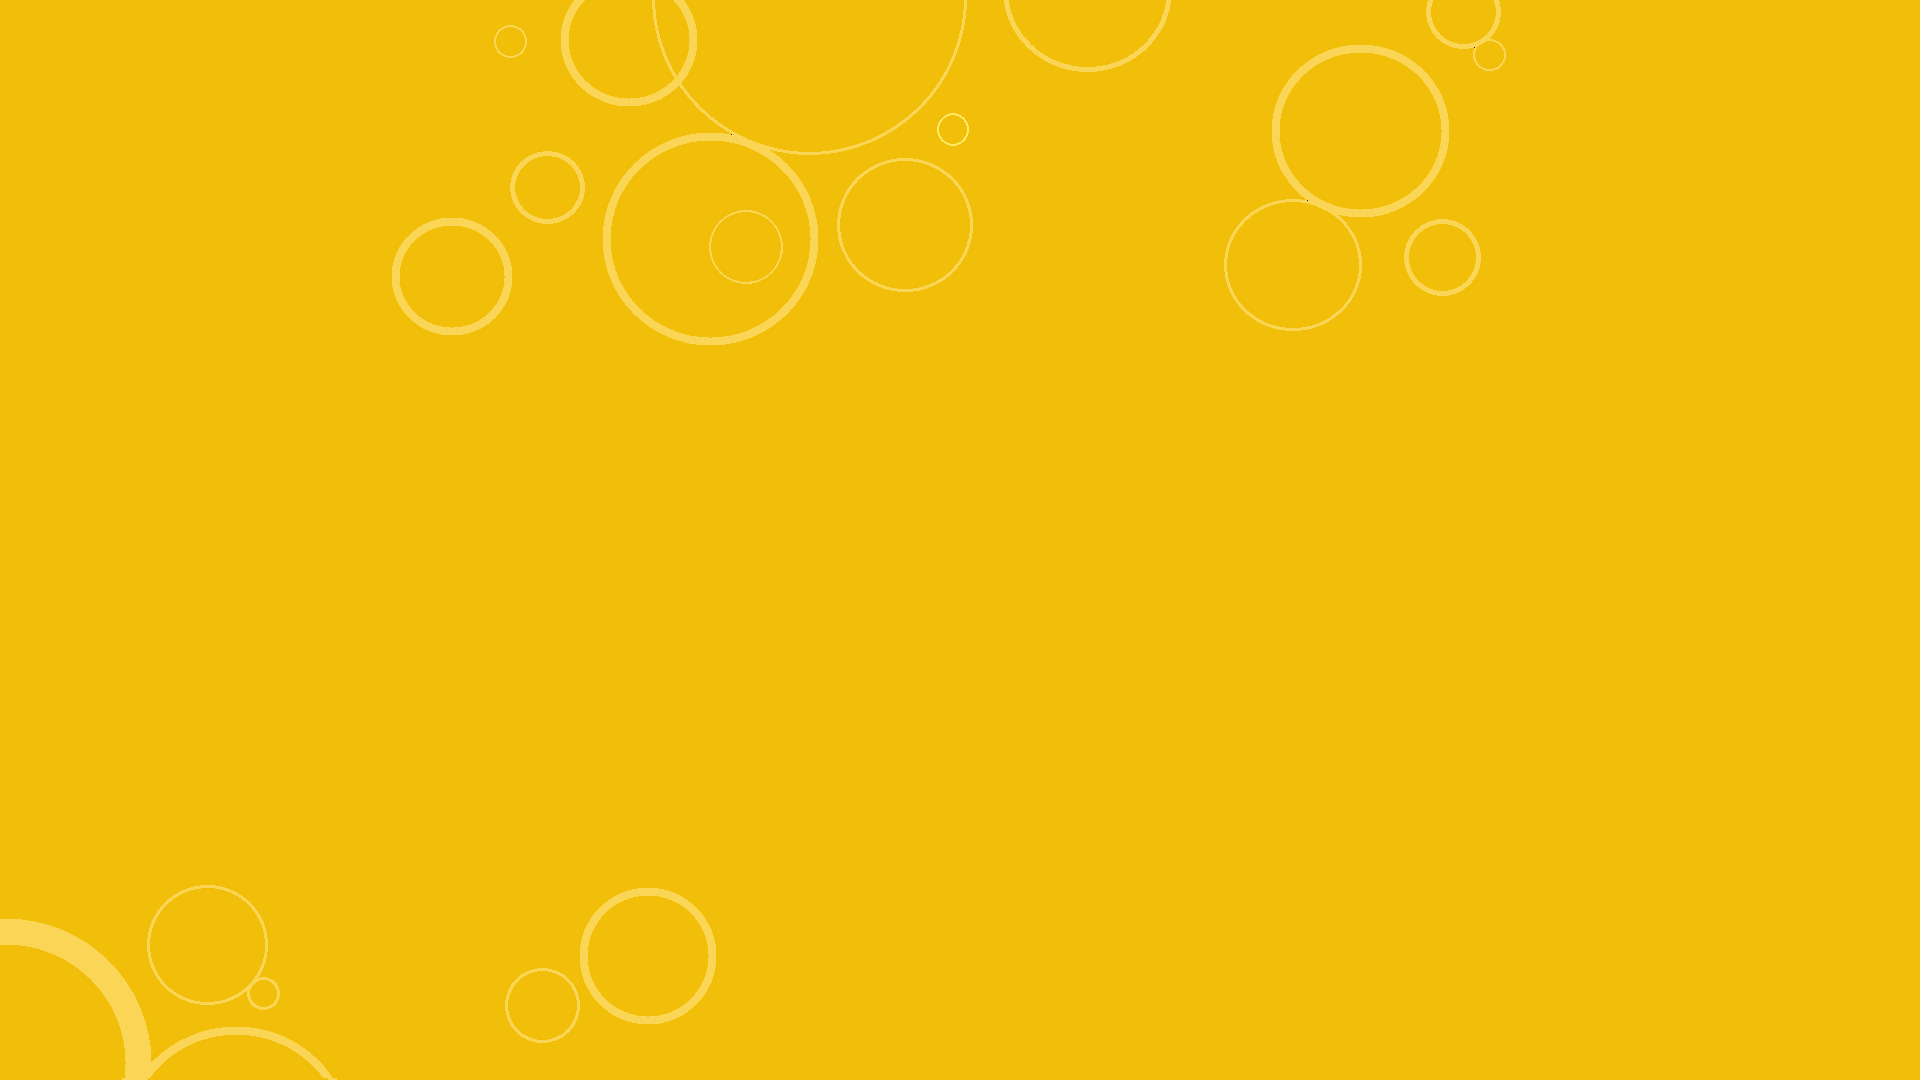 Abstract Yellow And Red Background Images Stock Photos